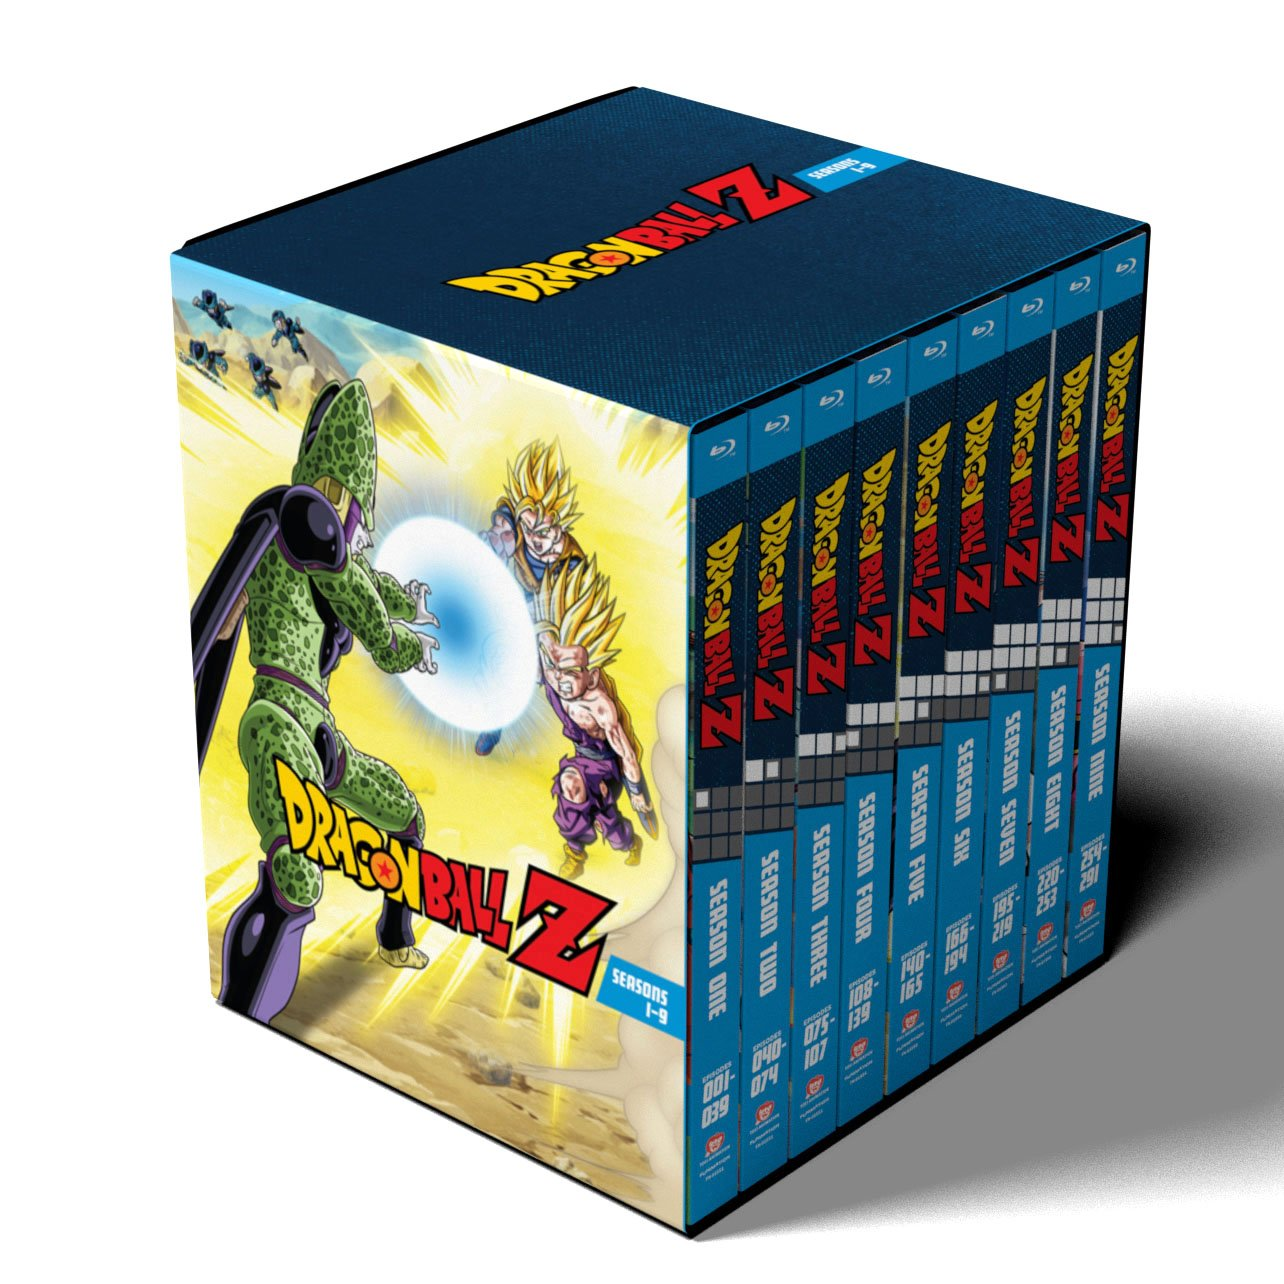 Dragon Ball Z: Seasons 1-9 Collection (Amazon Exclusive) [Blu-ray] by Funimation